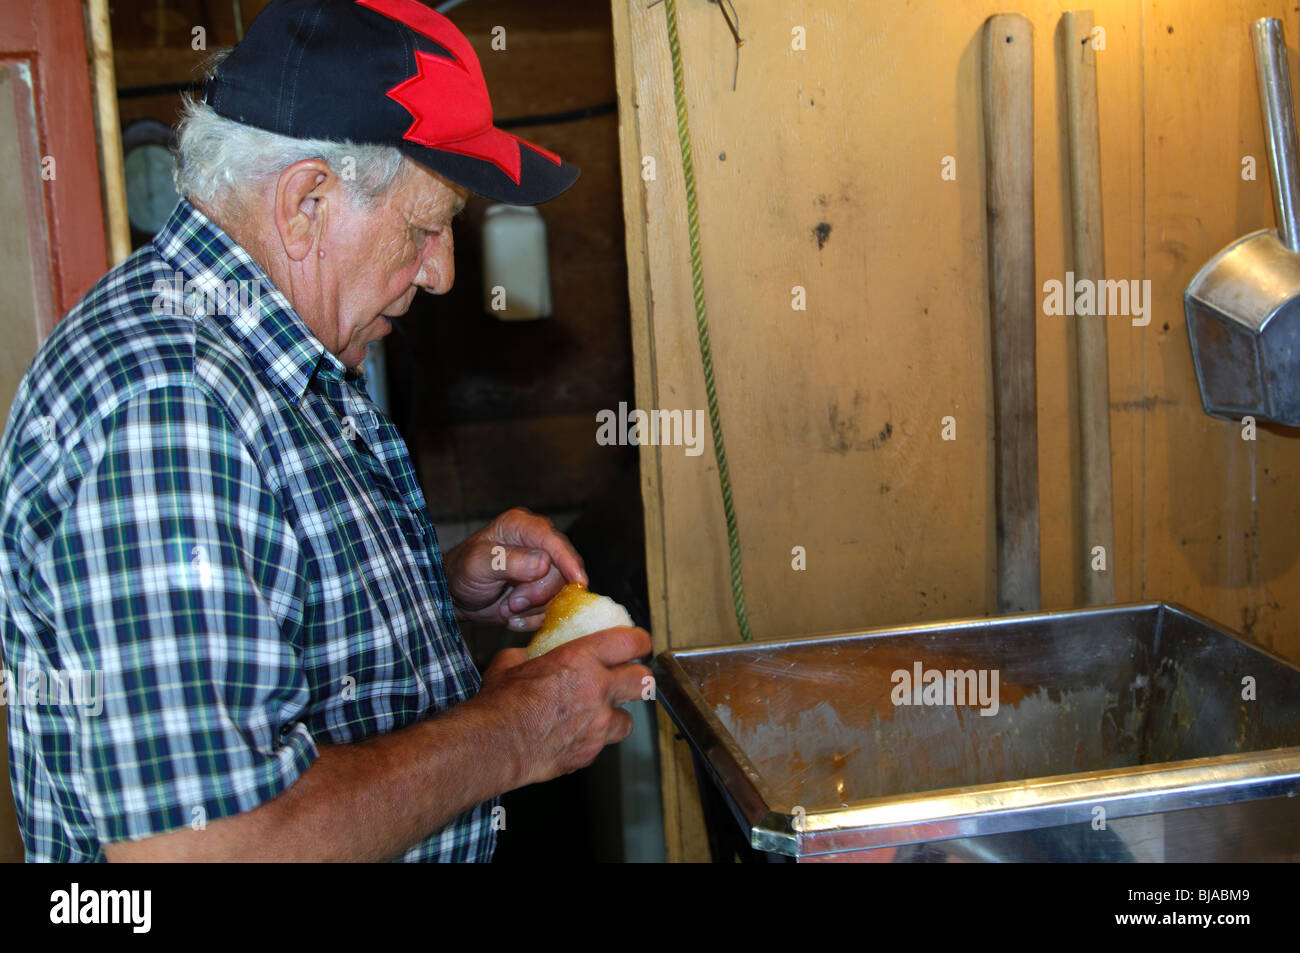 Staff of a sugar shack tasting hot maple syrup on an ice ball, Province of Quebec, Canada - Stock Image